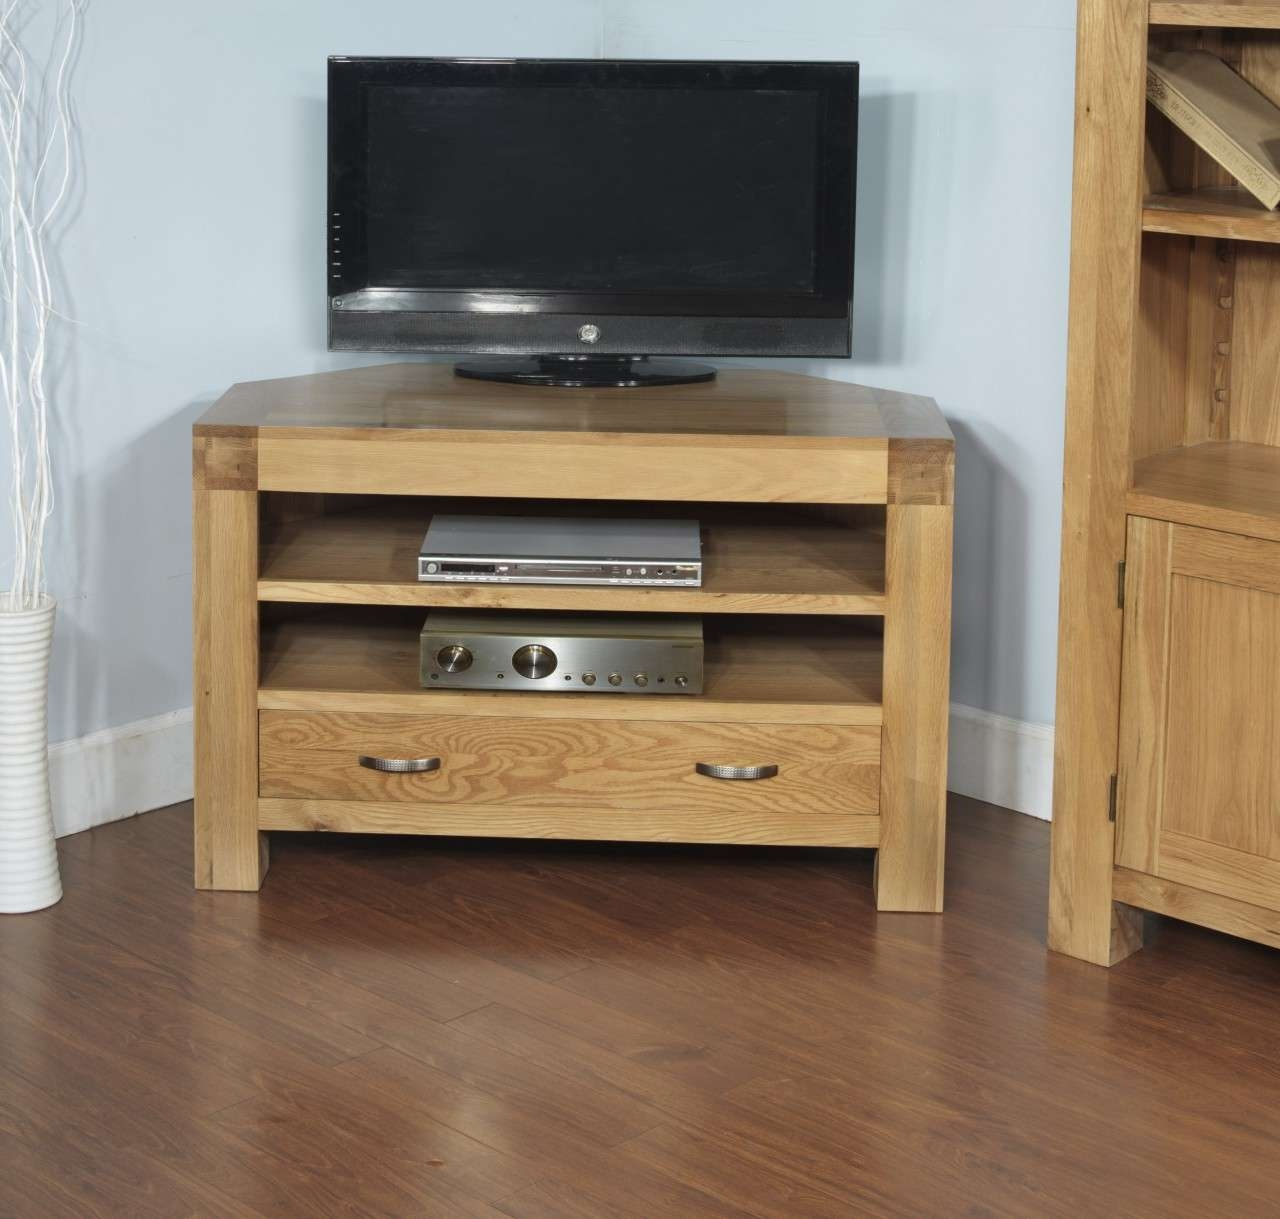 Oak Corner Tv Cabinet Furniture – Imanisr Inside Solid Oak Corner Tv Cabinets (View 10 of 20)